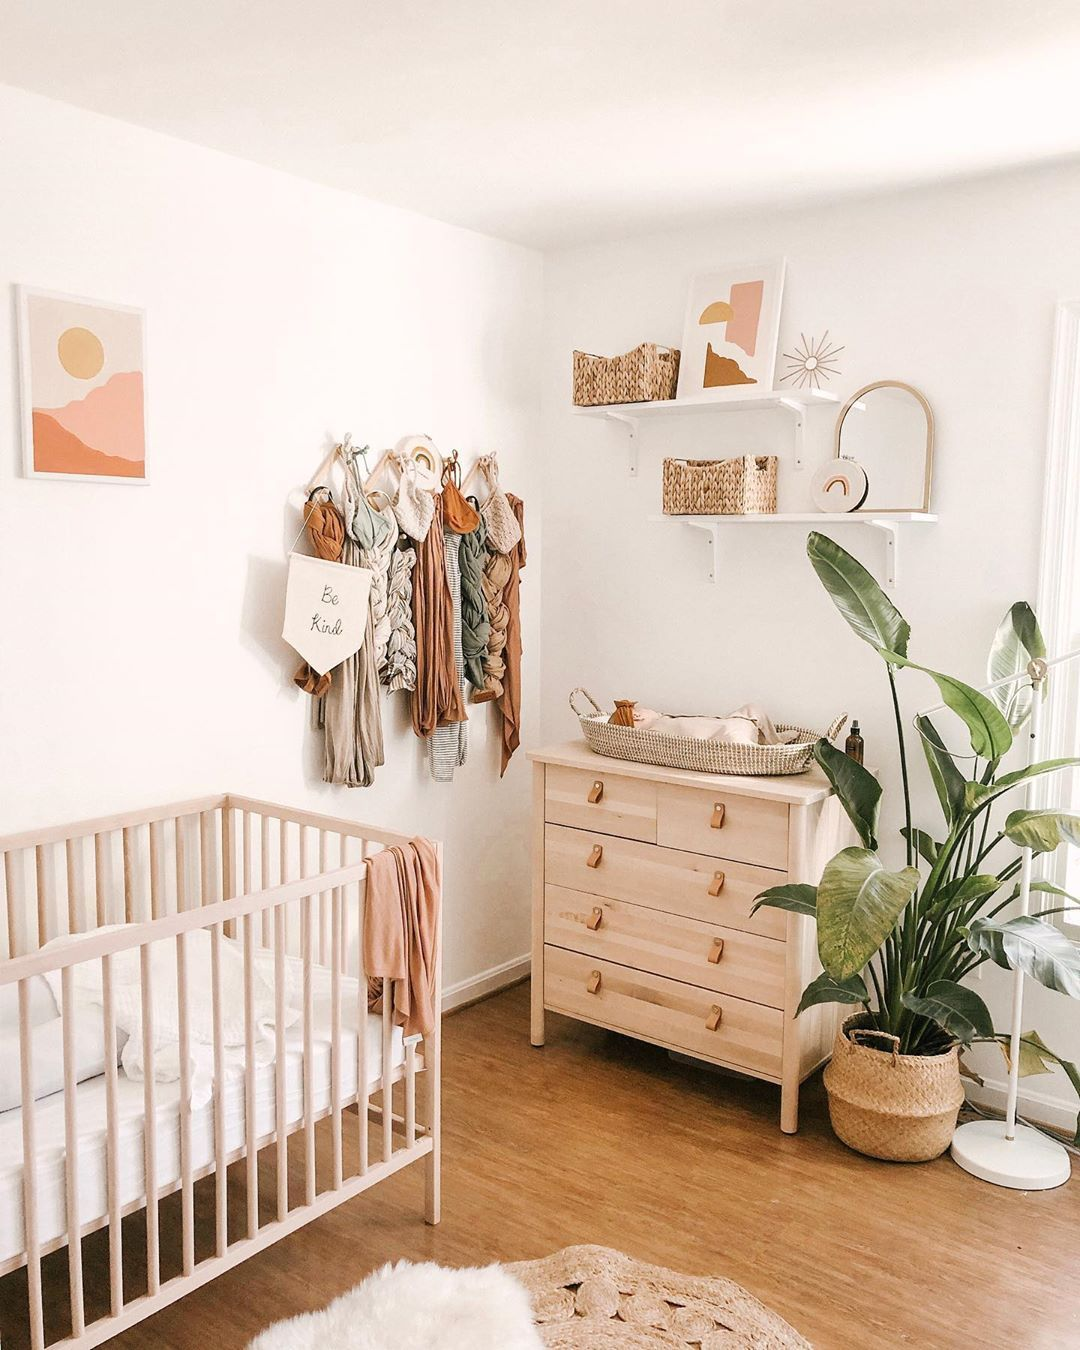 Currently Both My Girls Are Down With Colds And A Certain One Year Old Has Completely Refused Her Na… | Baby Room Neutral, Baby Girl Nursery Room, Girl Nursery Room